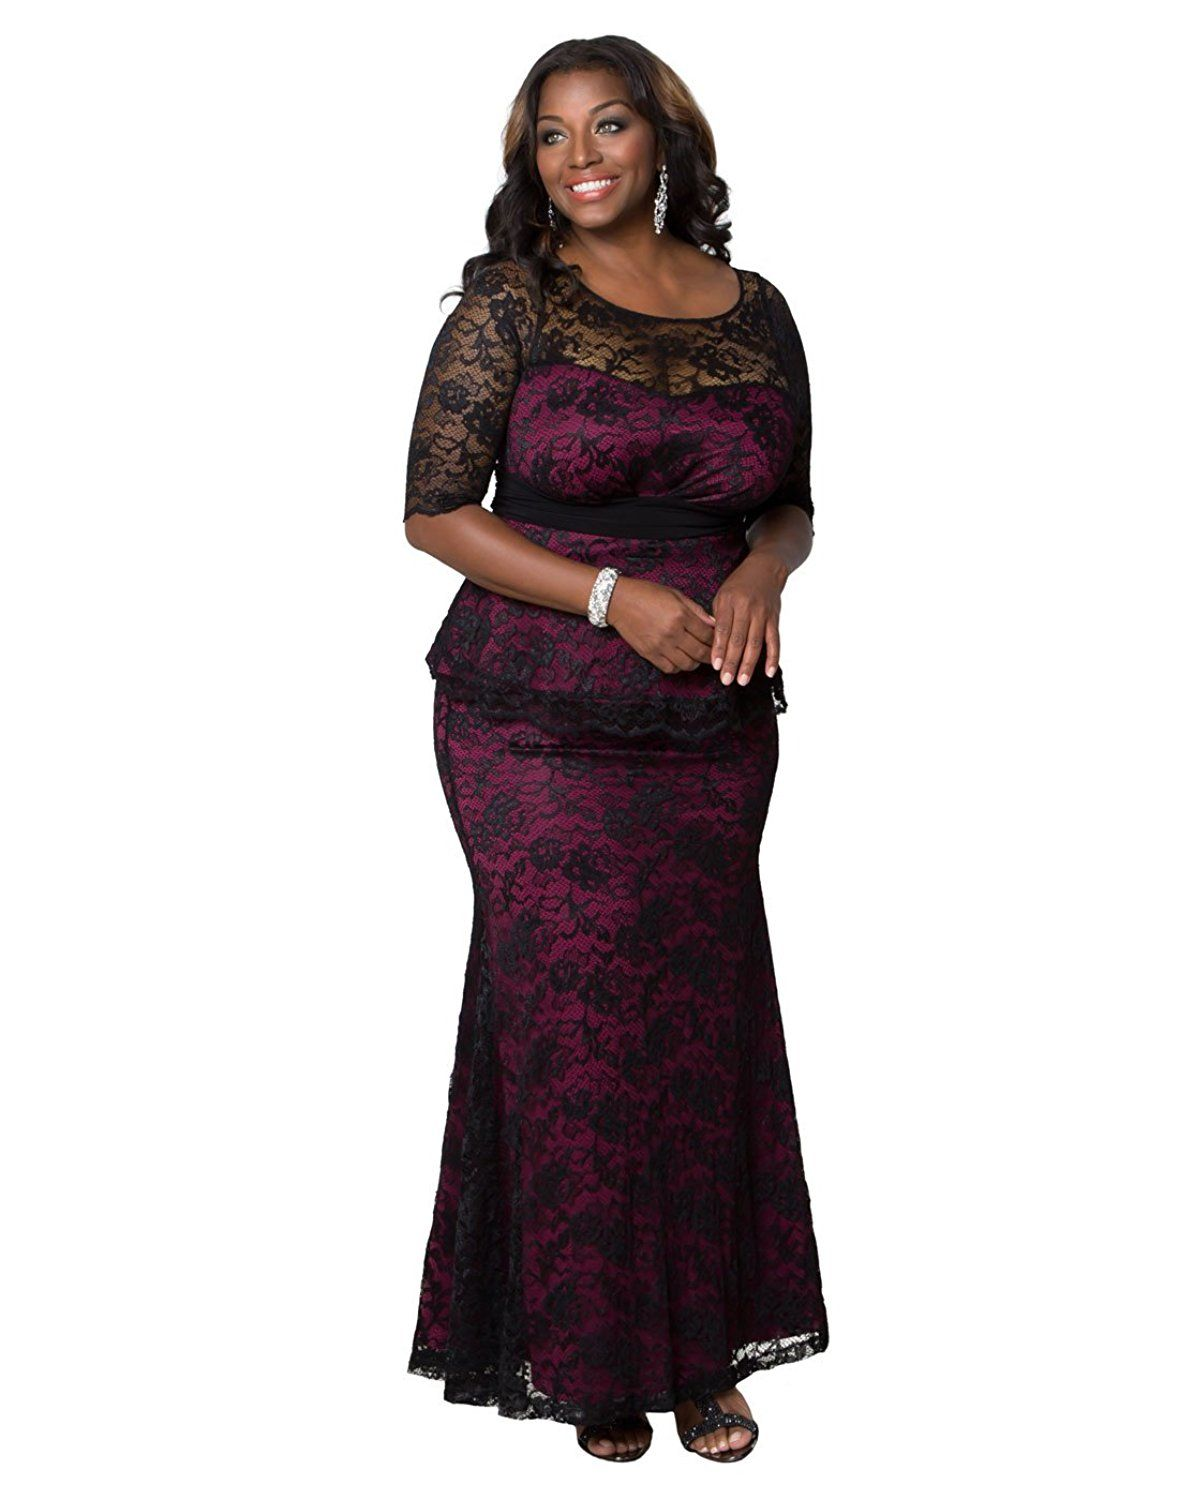 5d167f31726 Kiyonna Women s Plus Size Astoria Lace Peplum Gown   Tried it! Love it!  Click the image.   Women s dresses